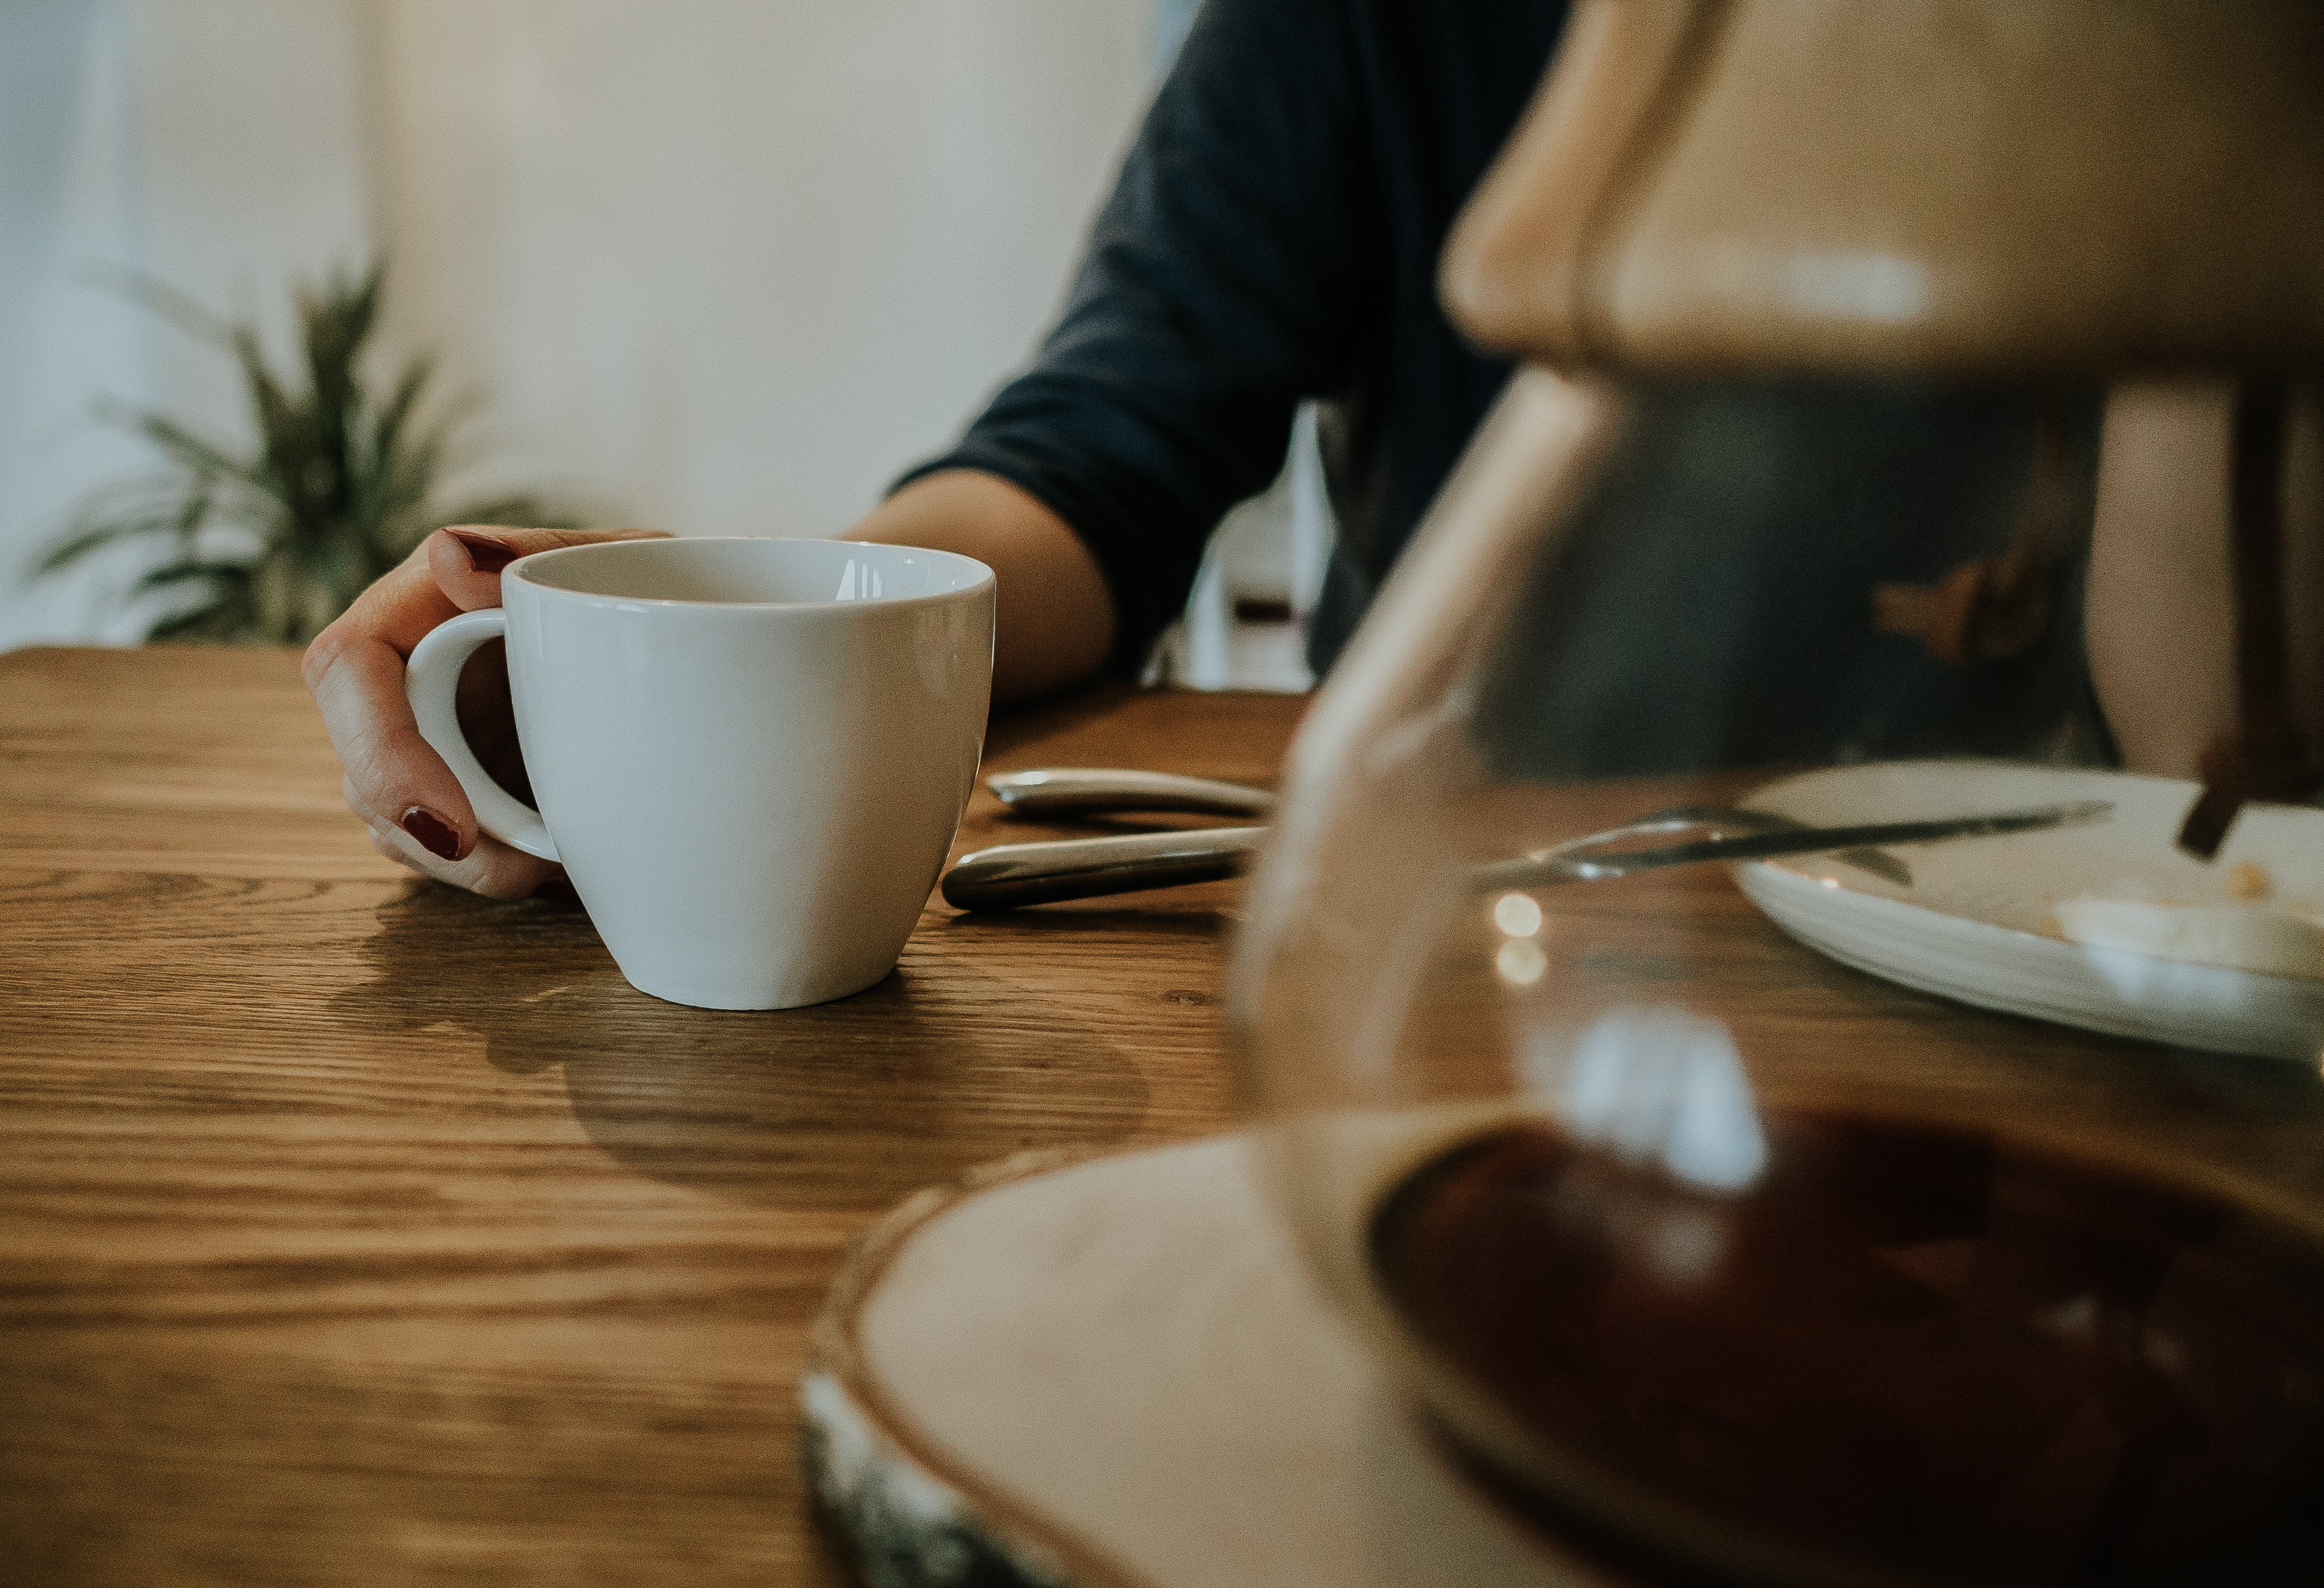 Free stock photo of chemex, coffee, cup, hand